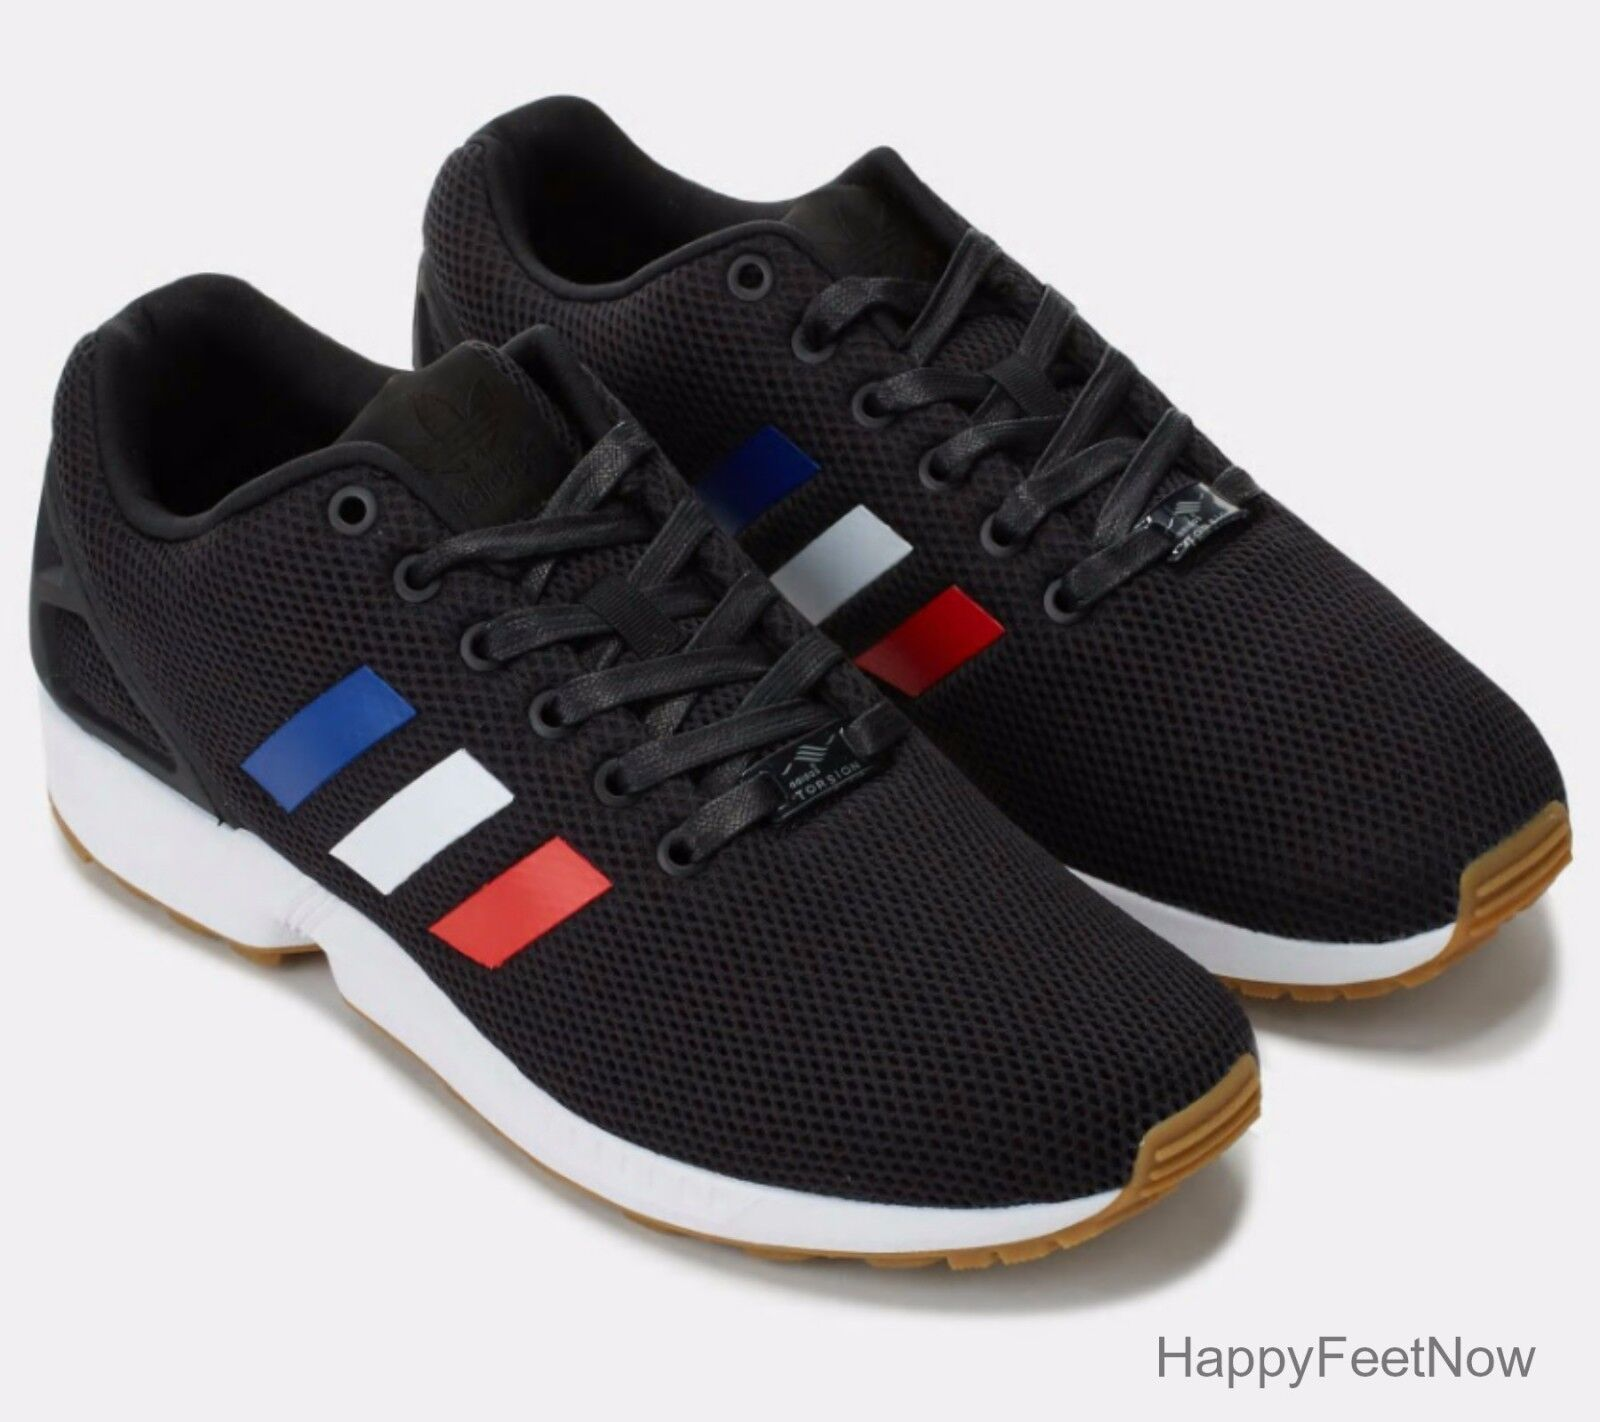 factory authentic 0356b 0b9ea ADIDAS ORIGINALS ZX FLUX RUNNING SHOES MEN'S SIZE US 10 BLACK TRICOLOR  BB2767